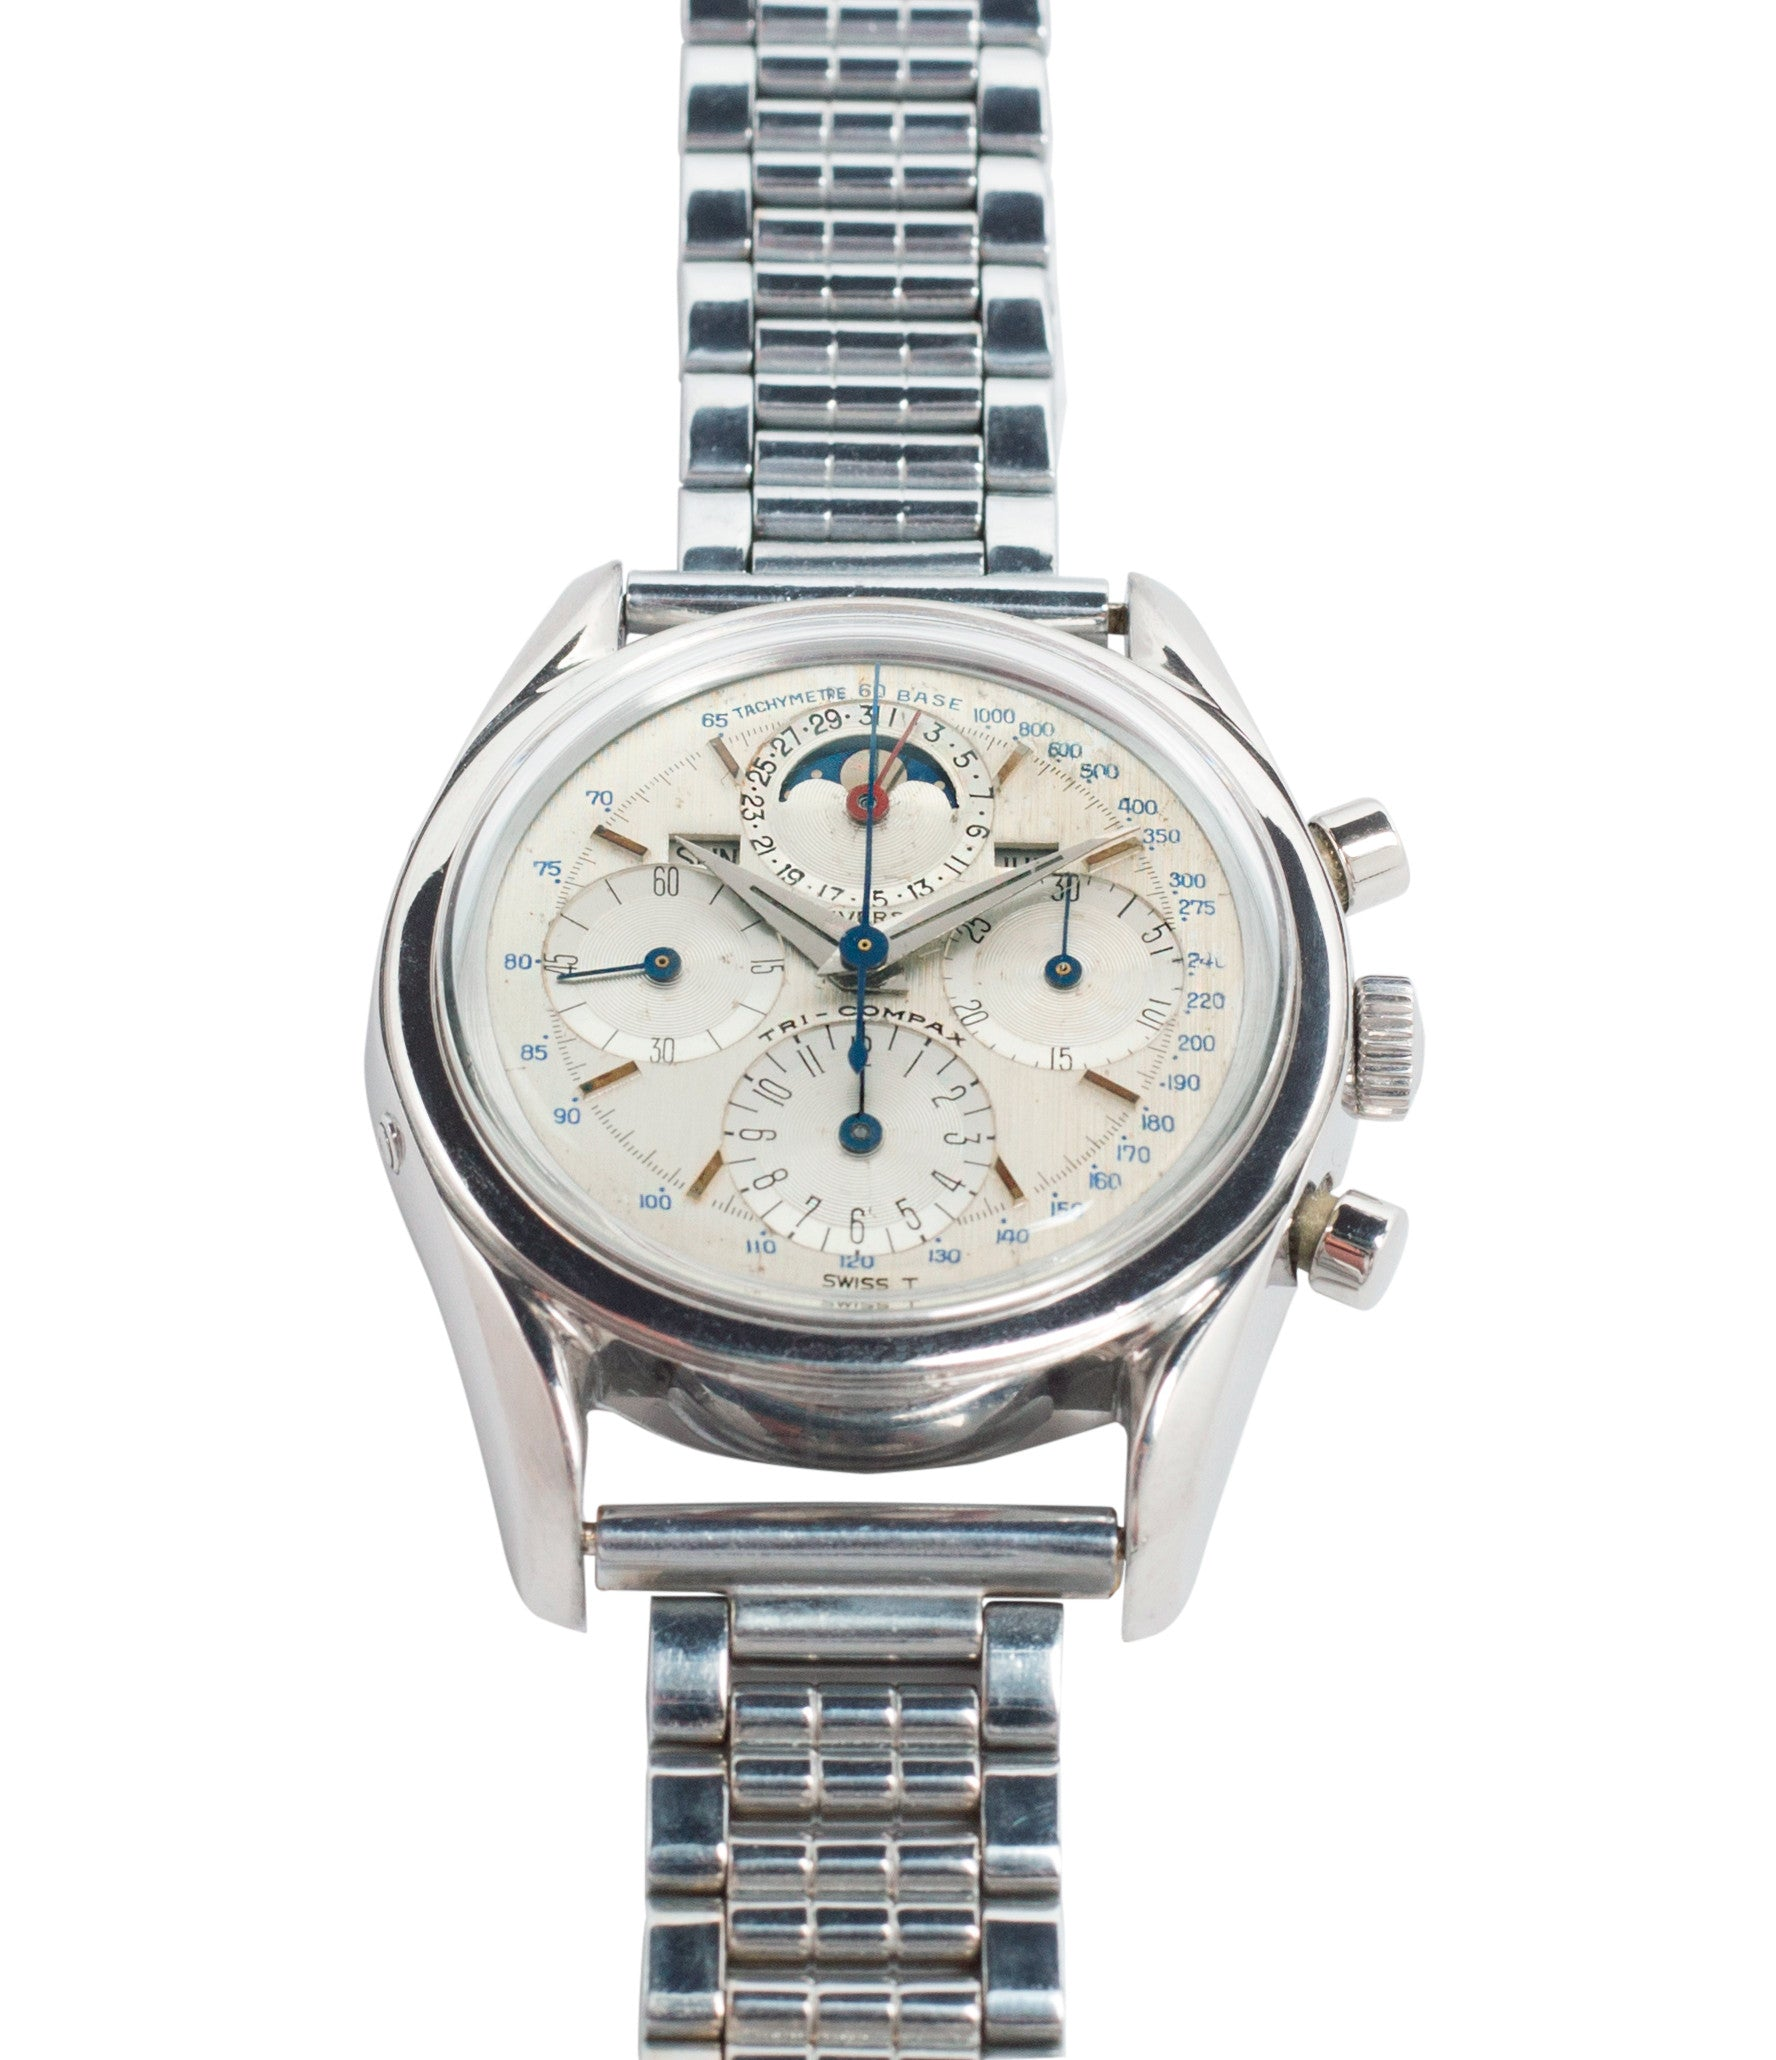 selling Universal Geneve 222100/2 Tri-Compax Triple Calendar Moonphase steel chronograph watch for sale online at A Collected Man London rare vintage watch specialist